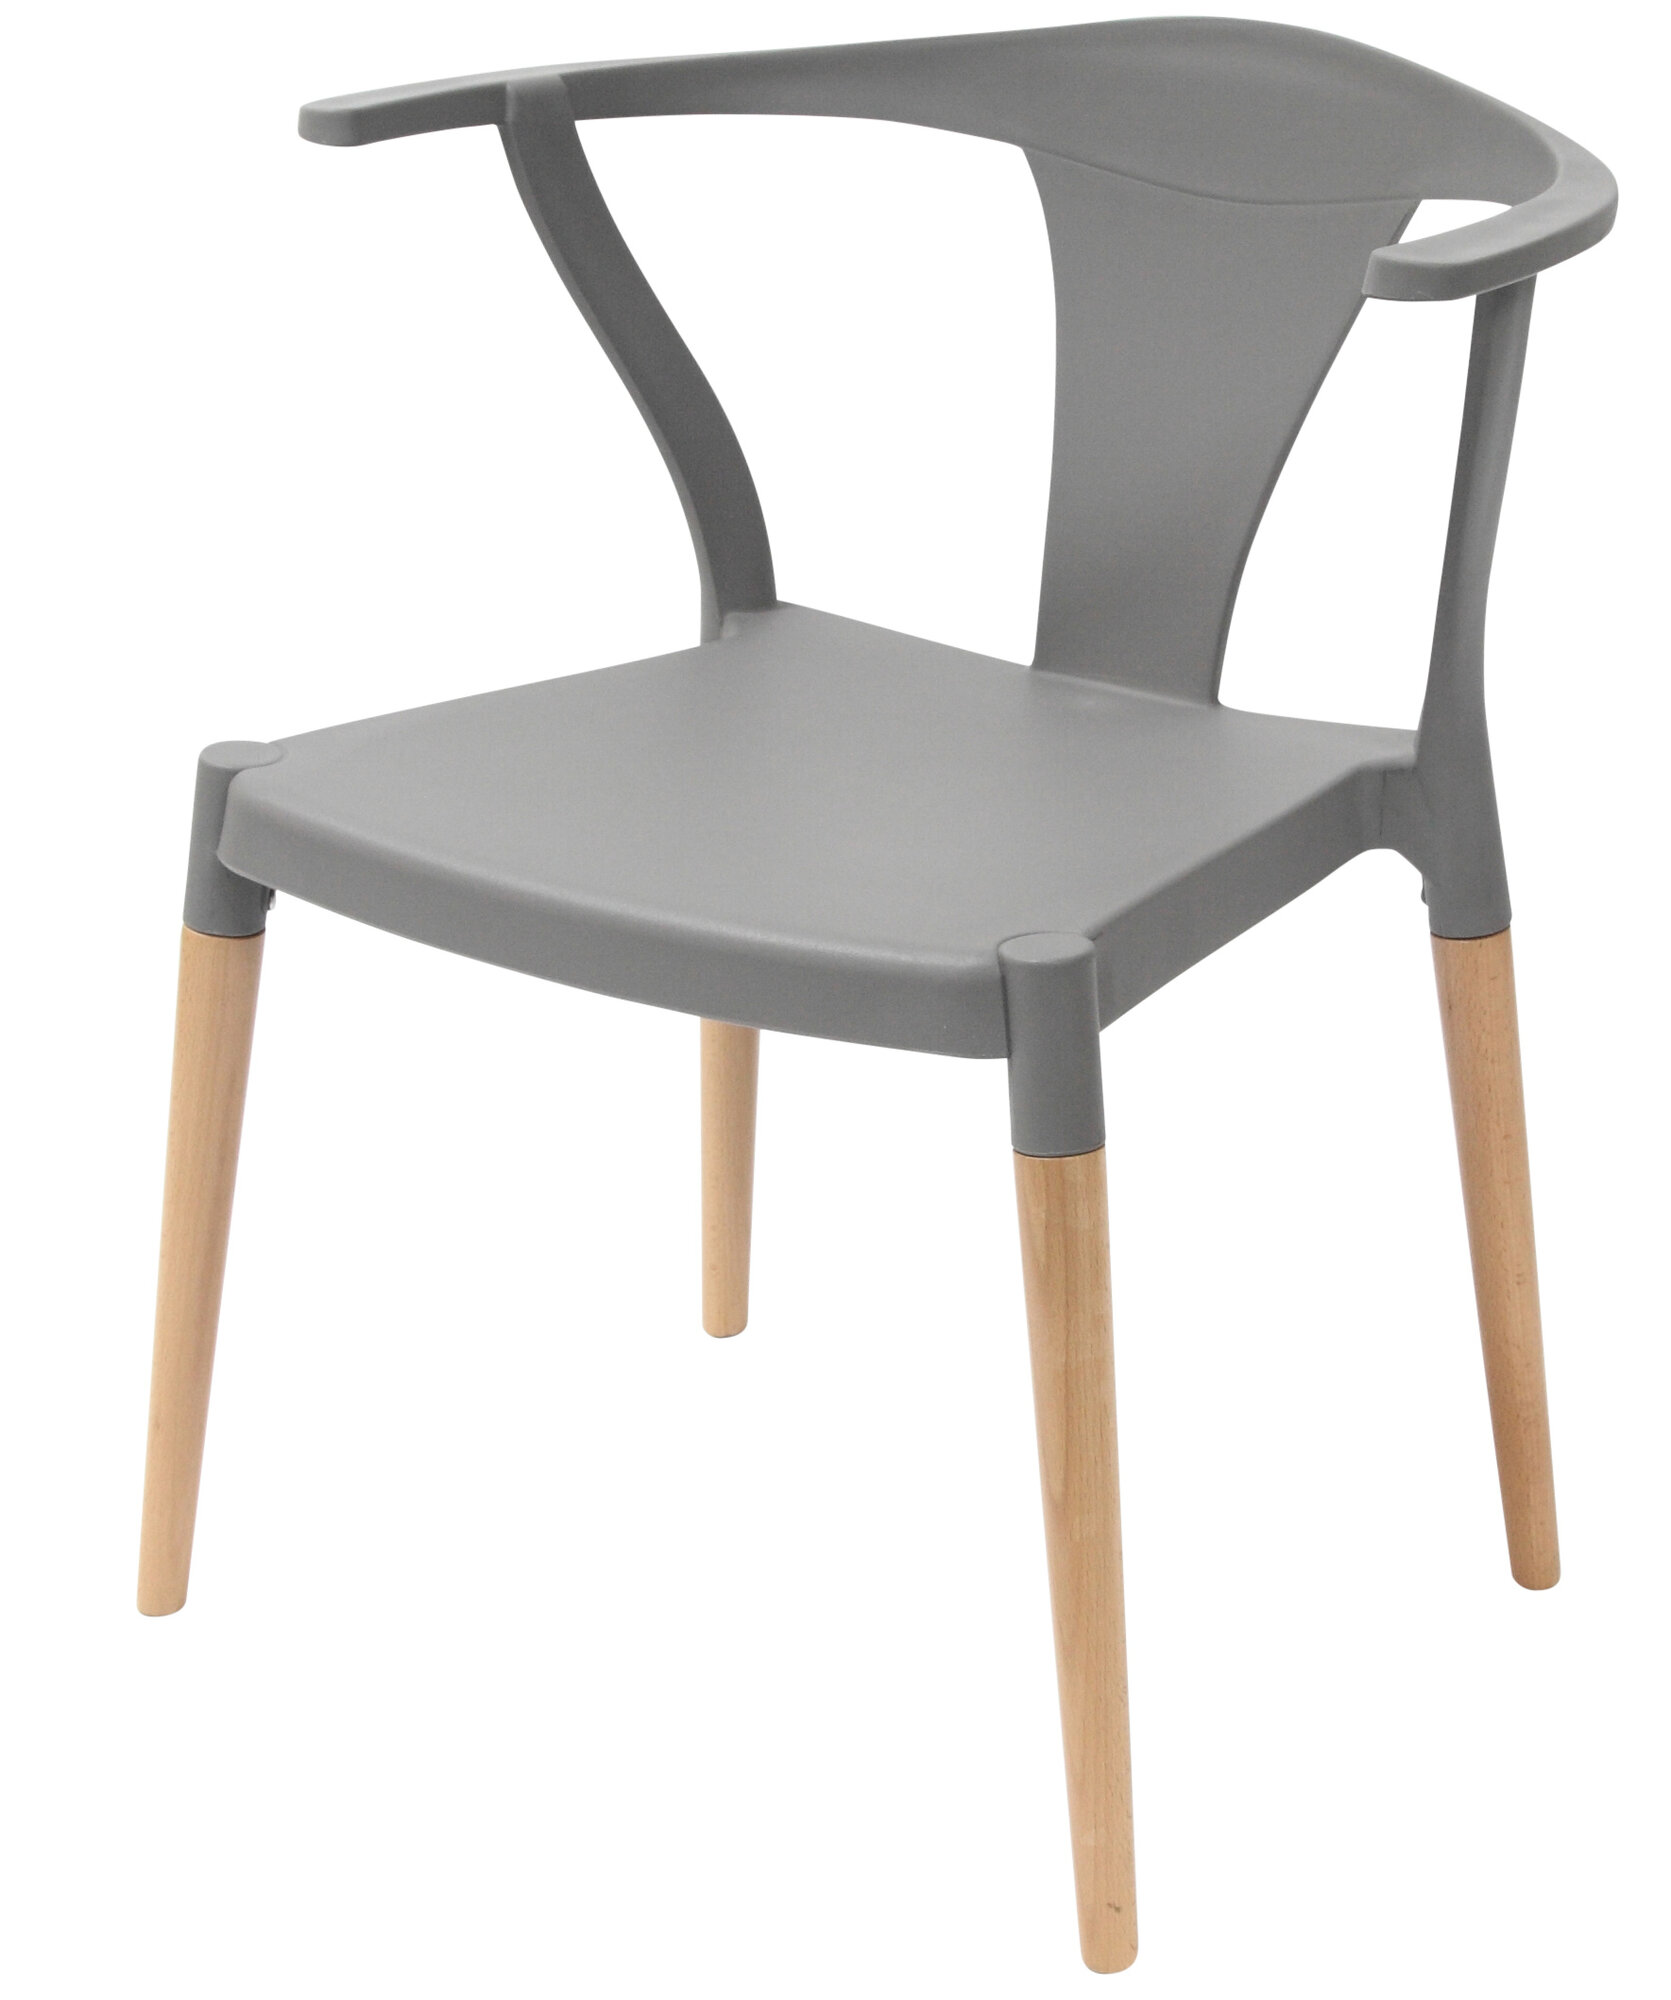 Terrific Details About Emodern Decor Icon Dining Chair Set Of 2 Cjindustries Chair Design For Home Cjindustriesco